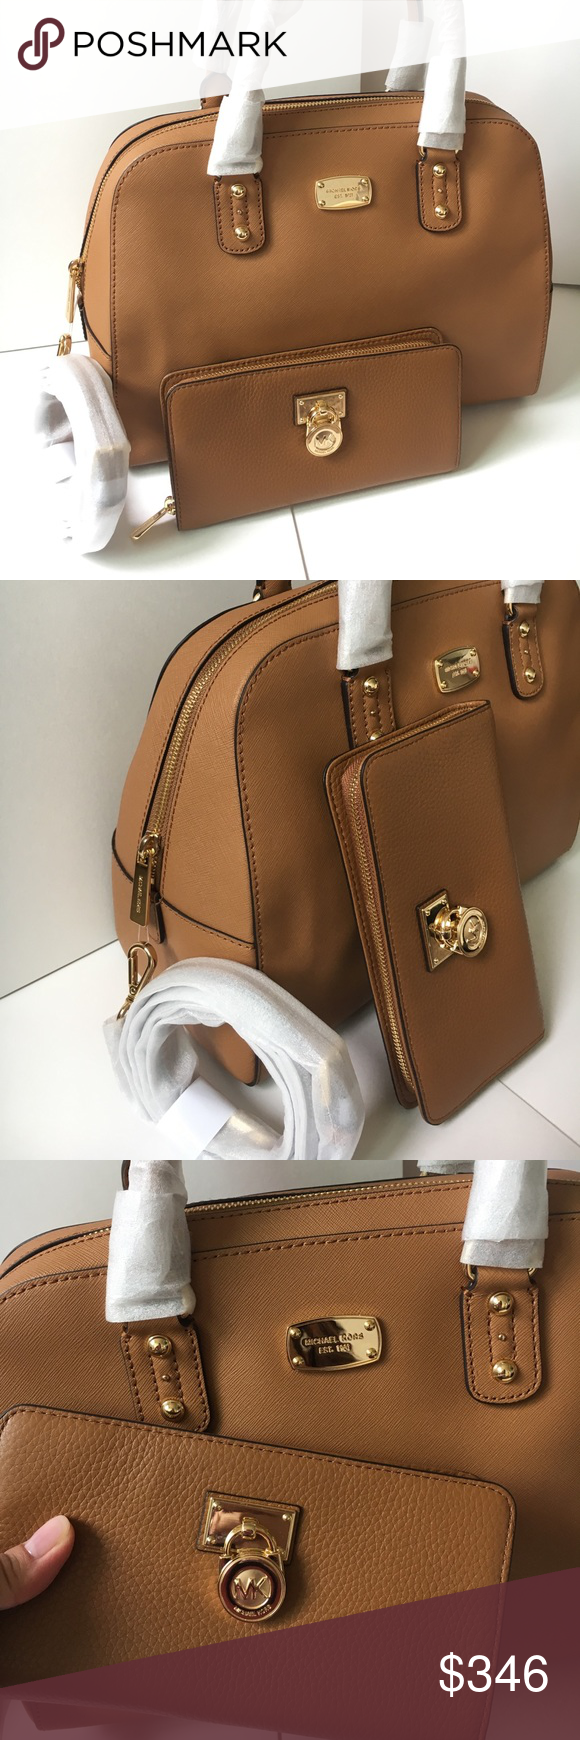 Mk Satchel Nwt Satchels Michael Kors And Purse Small Acorn Authentic Both Brand New With Tags Saffiano Large Size